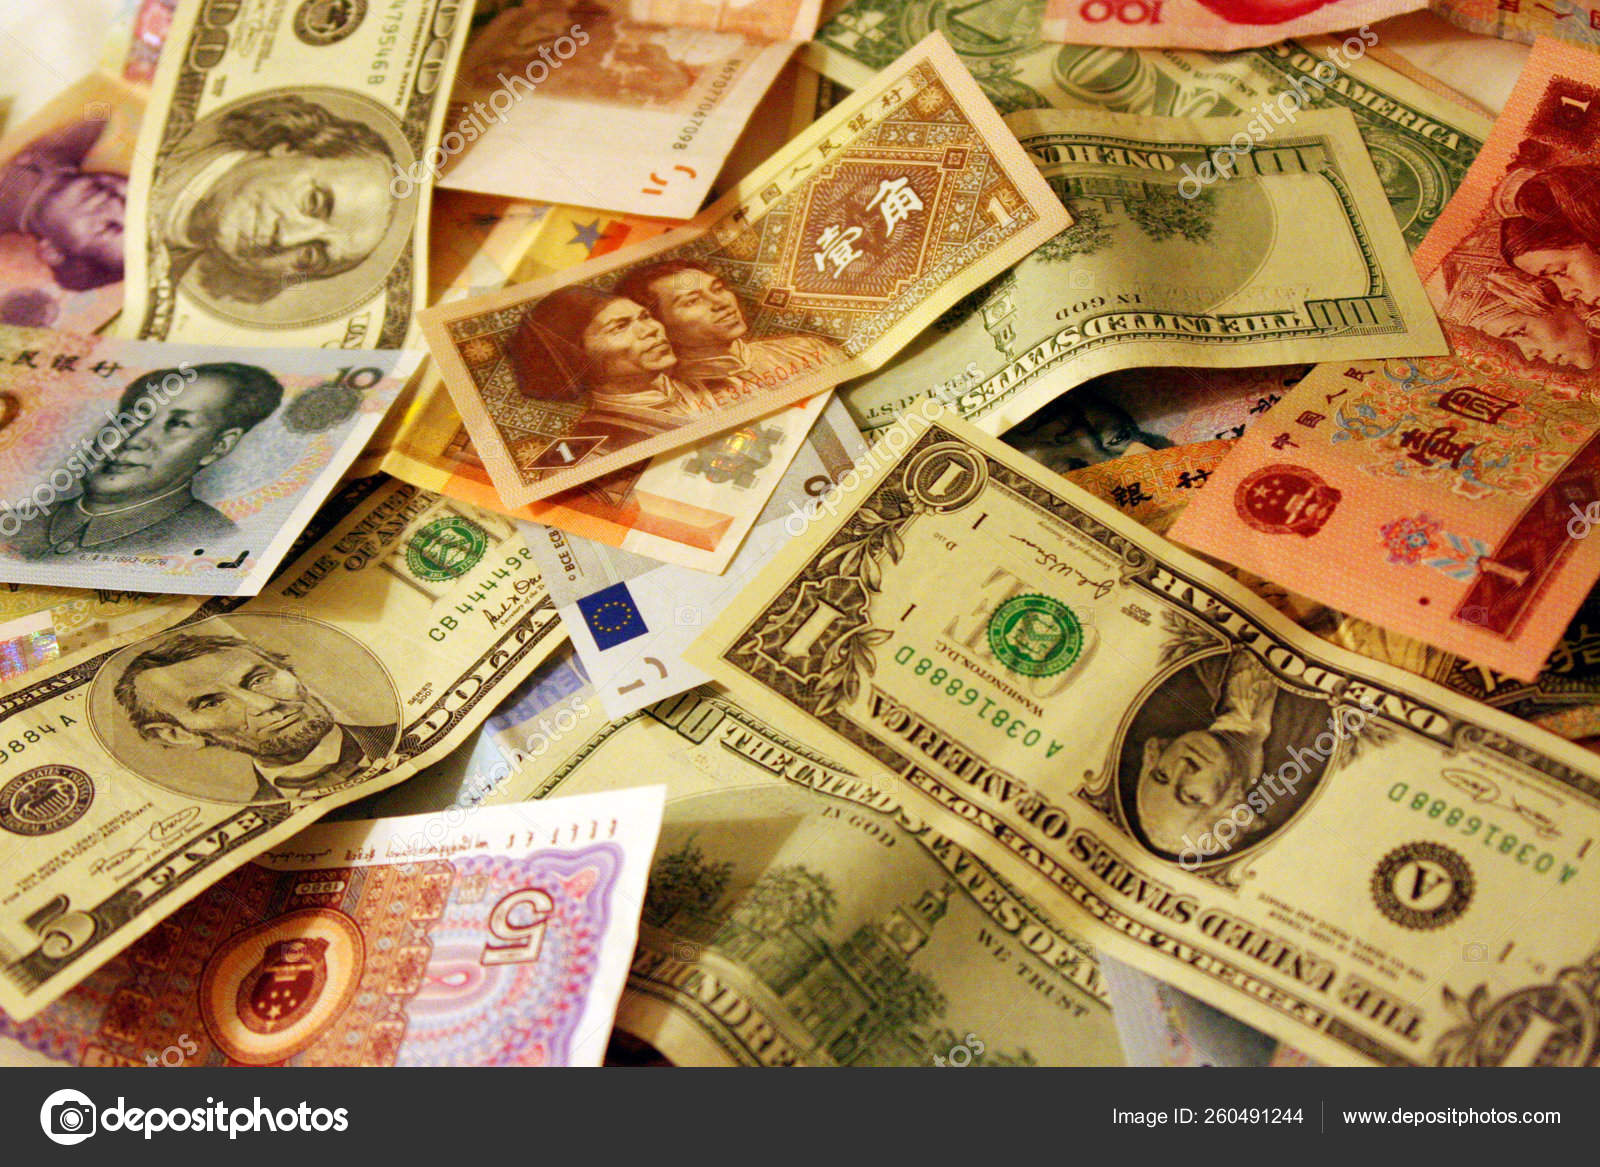 Background Paper Money Banknotes China Features Euro Dollars